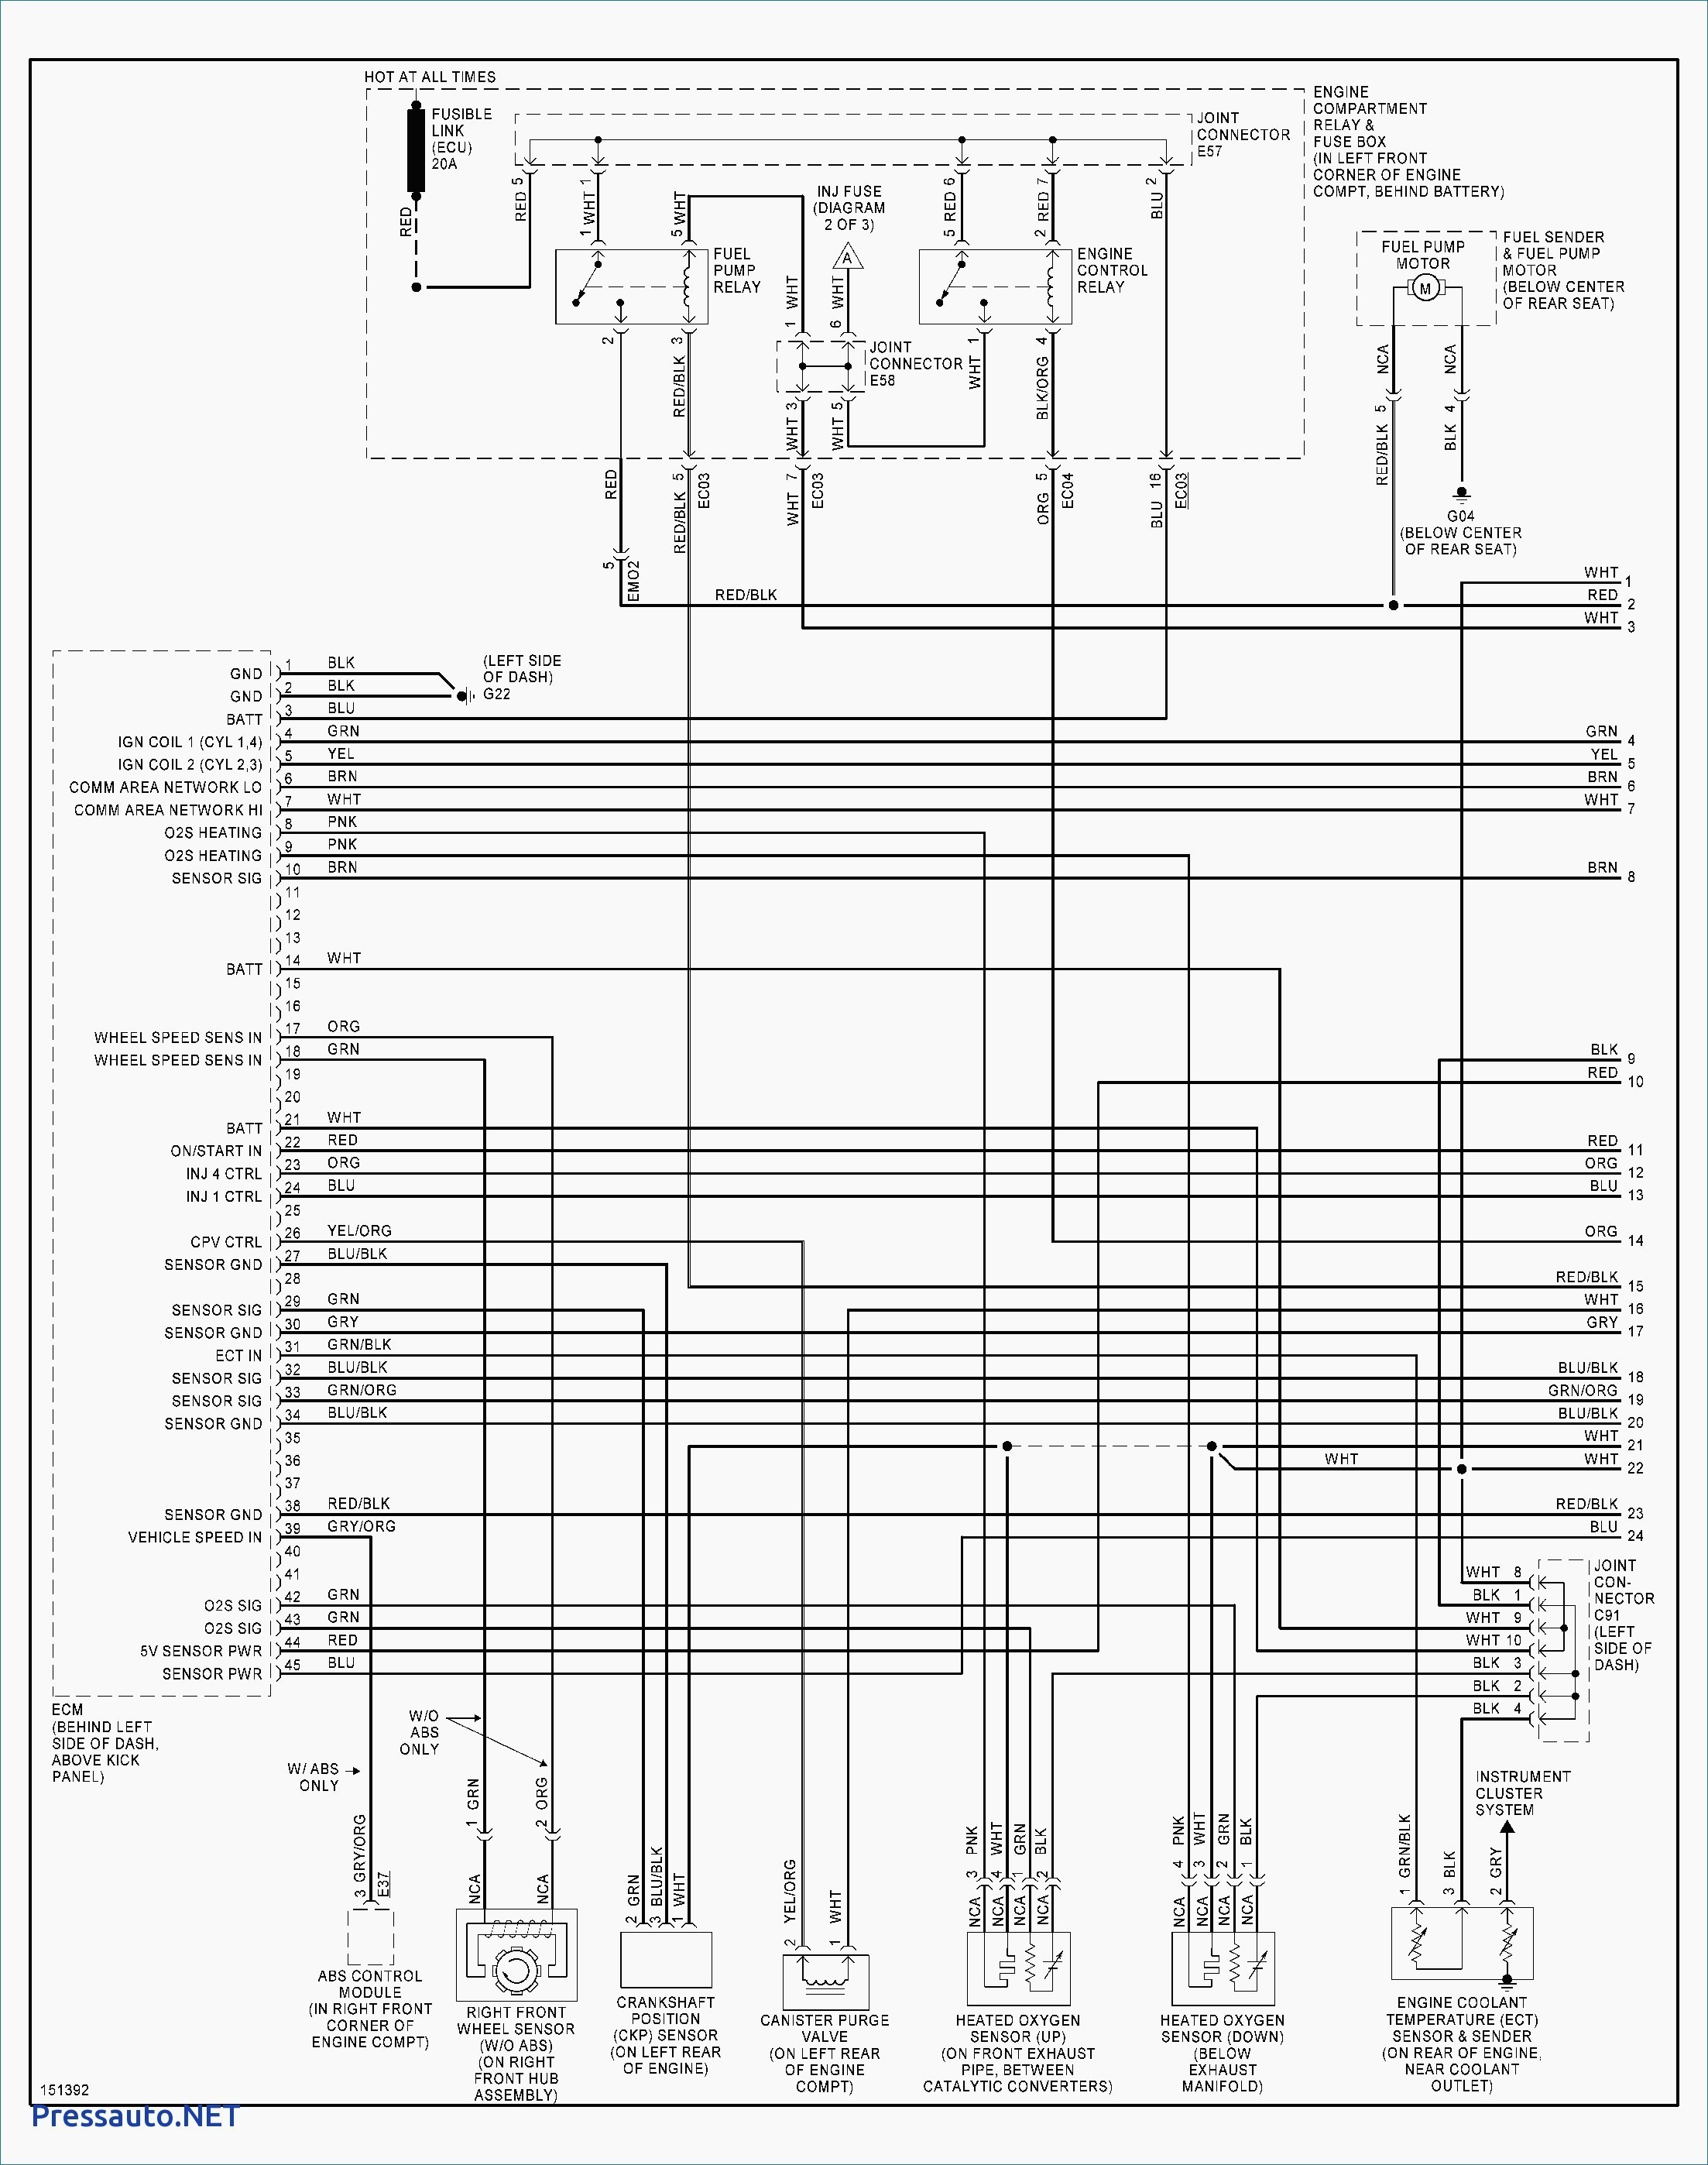 2001 hyundai elantra engine diagram 2004 hyundai santa fe engine diagram unique hyundai wiring diagrams of 2001 hyundai elantra engine diagram 02 hyundai accent wiring diagram wiring diagram data